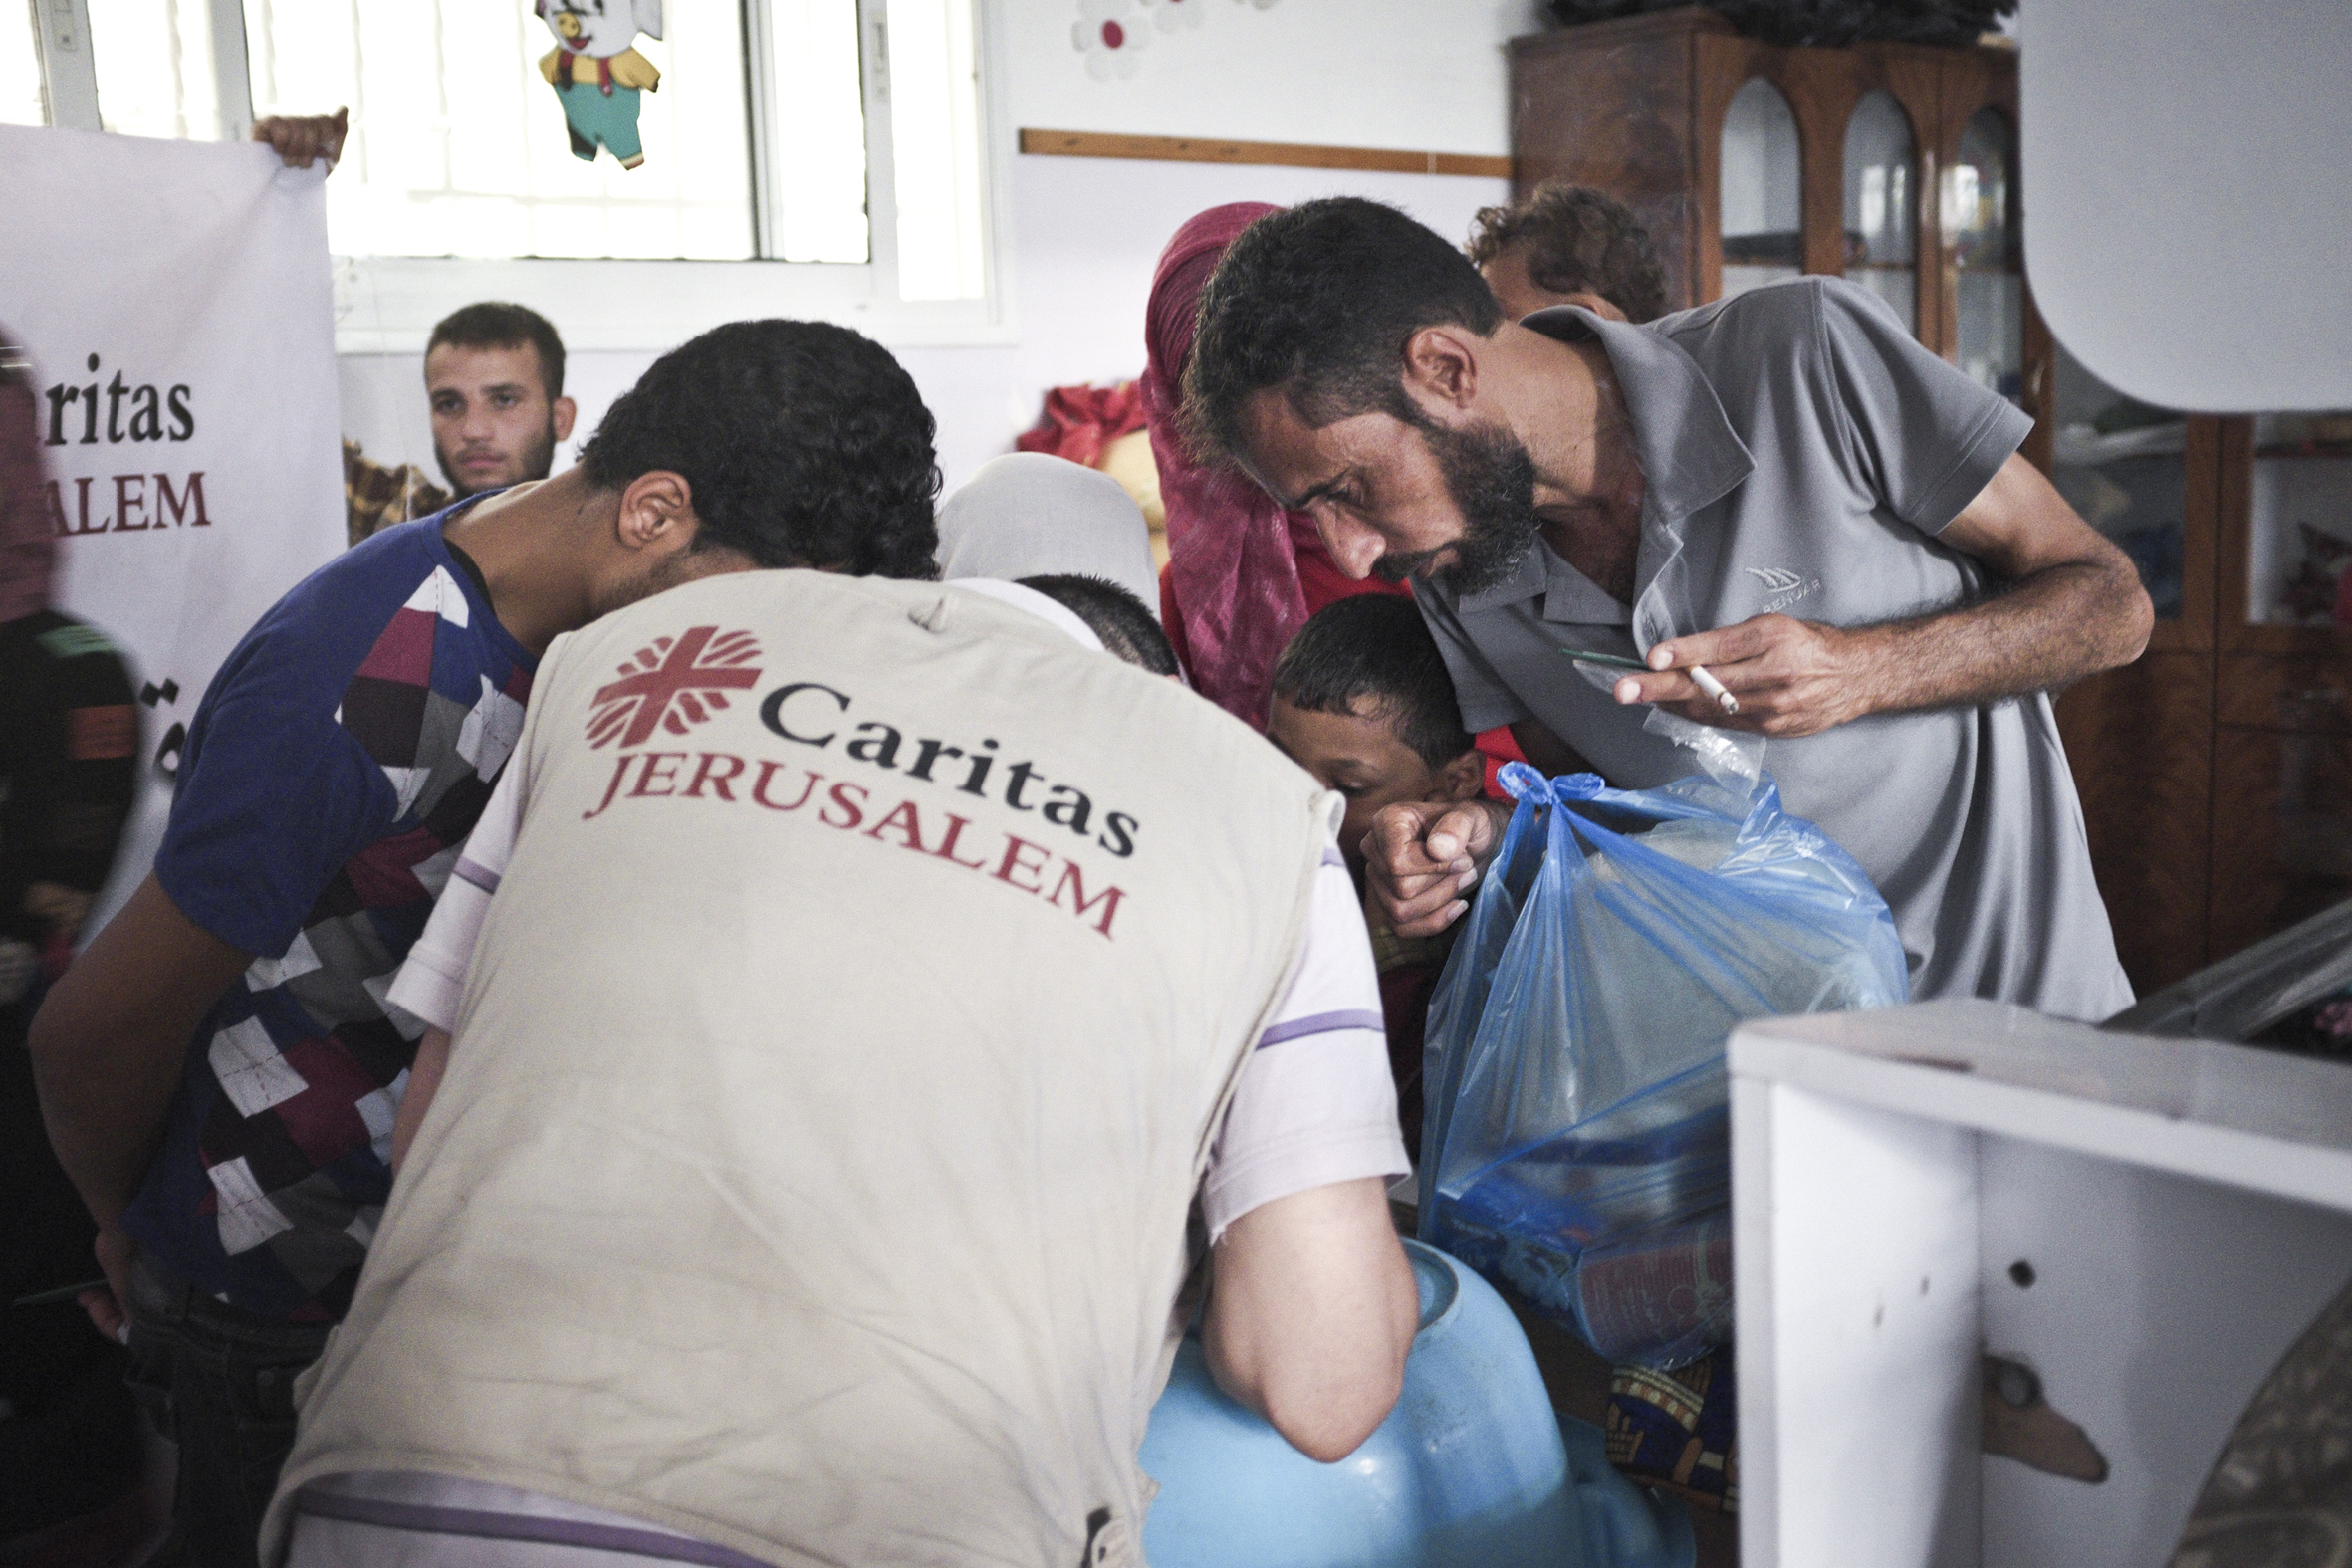 Distribution of donations by Caritas Jerusalem